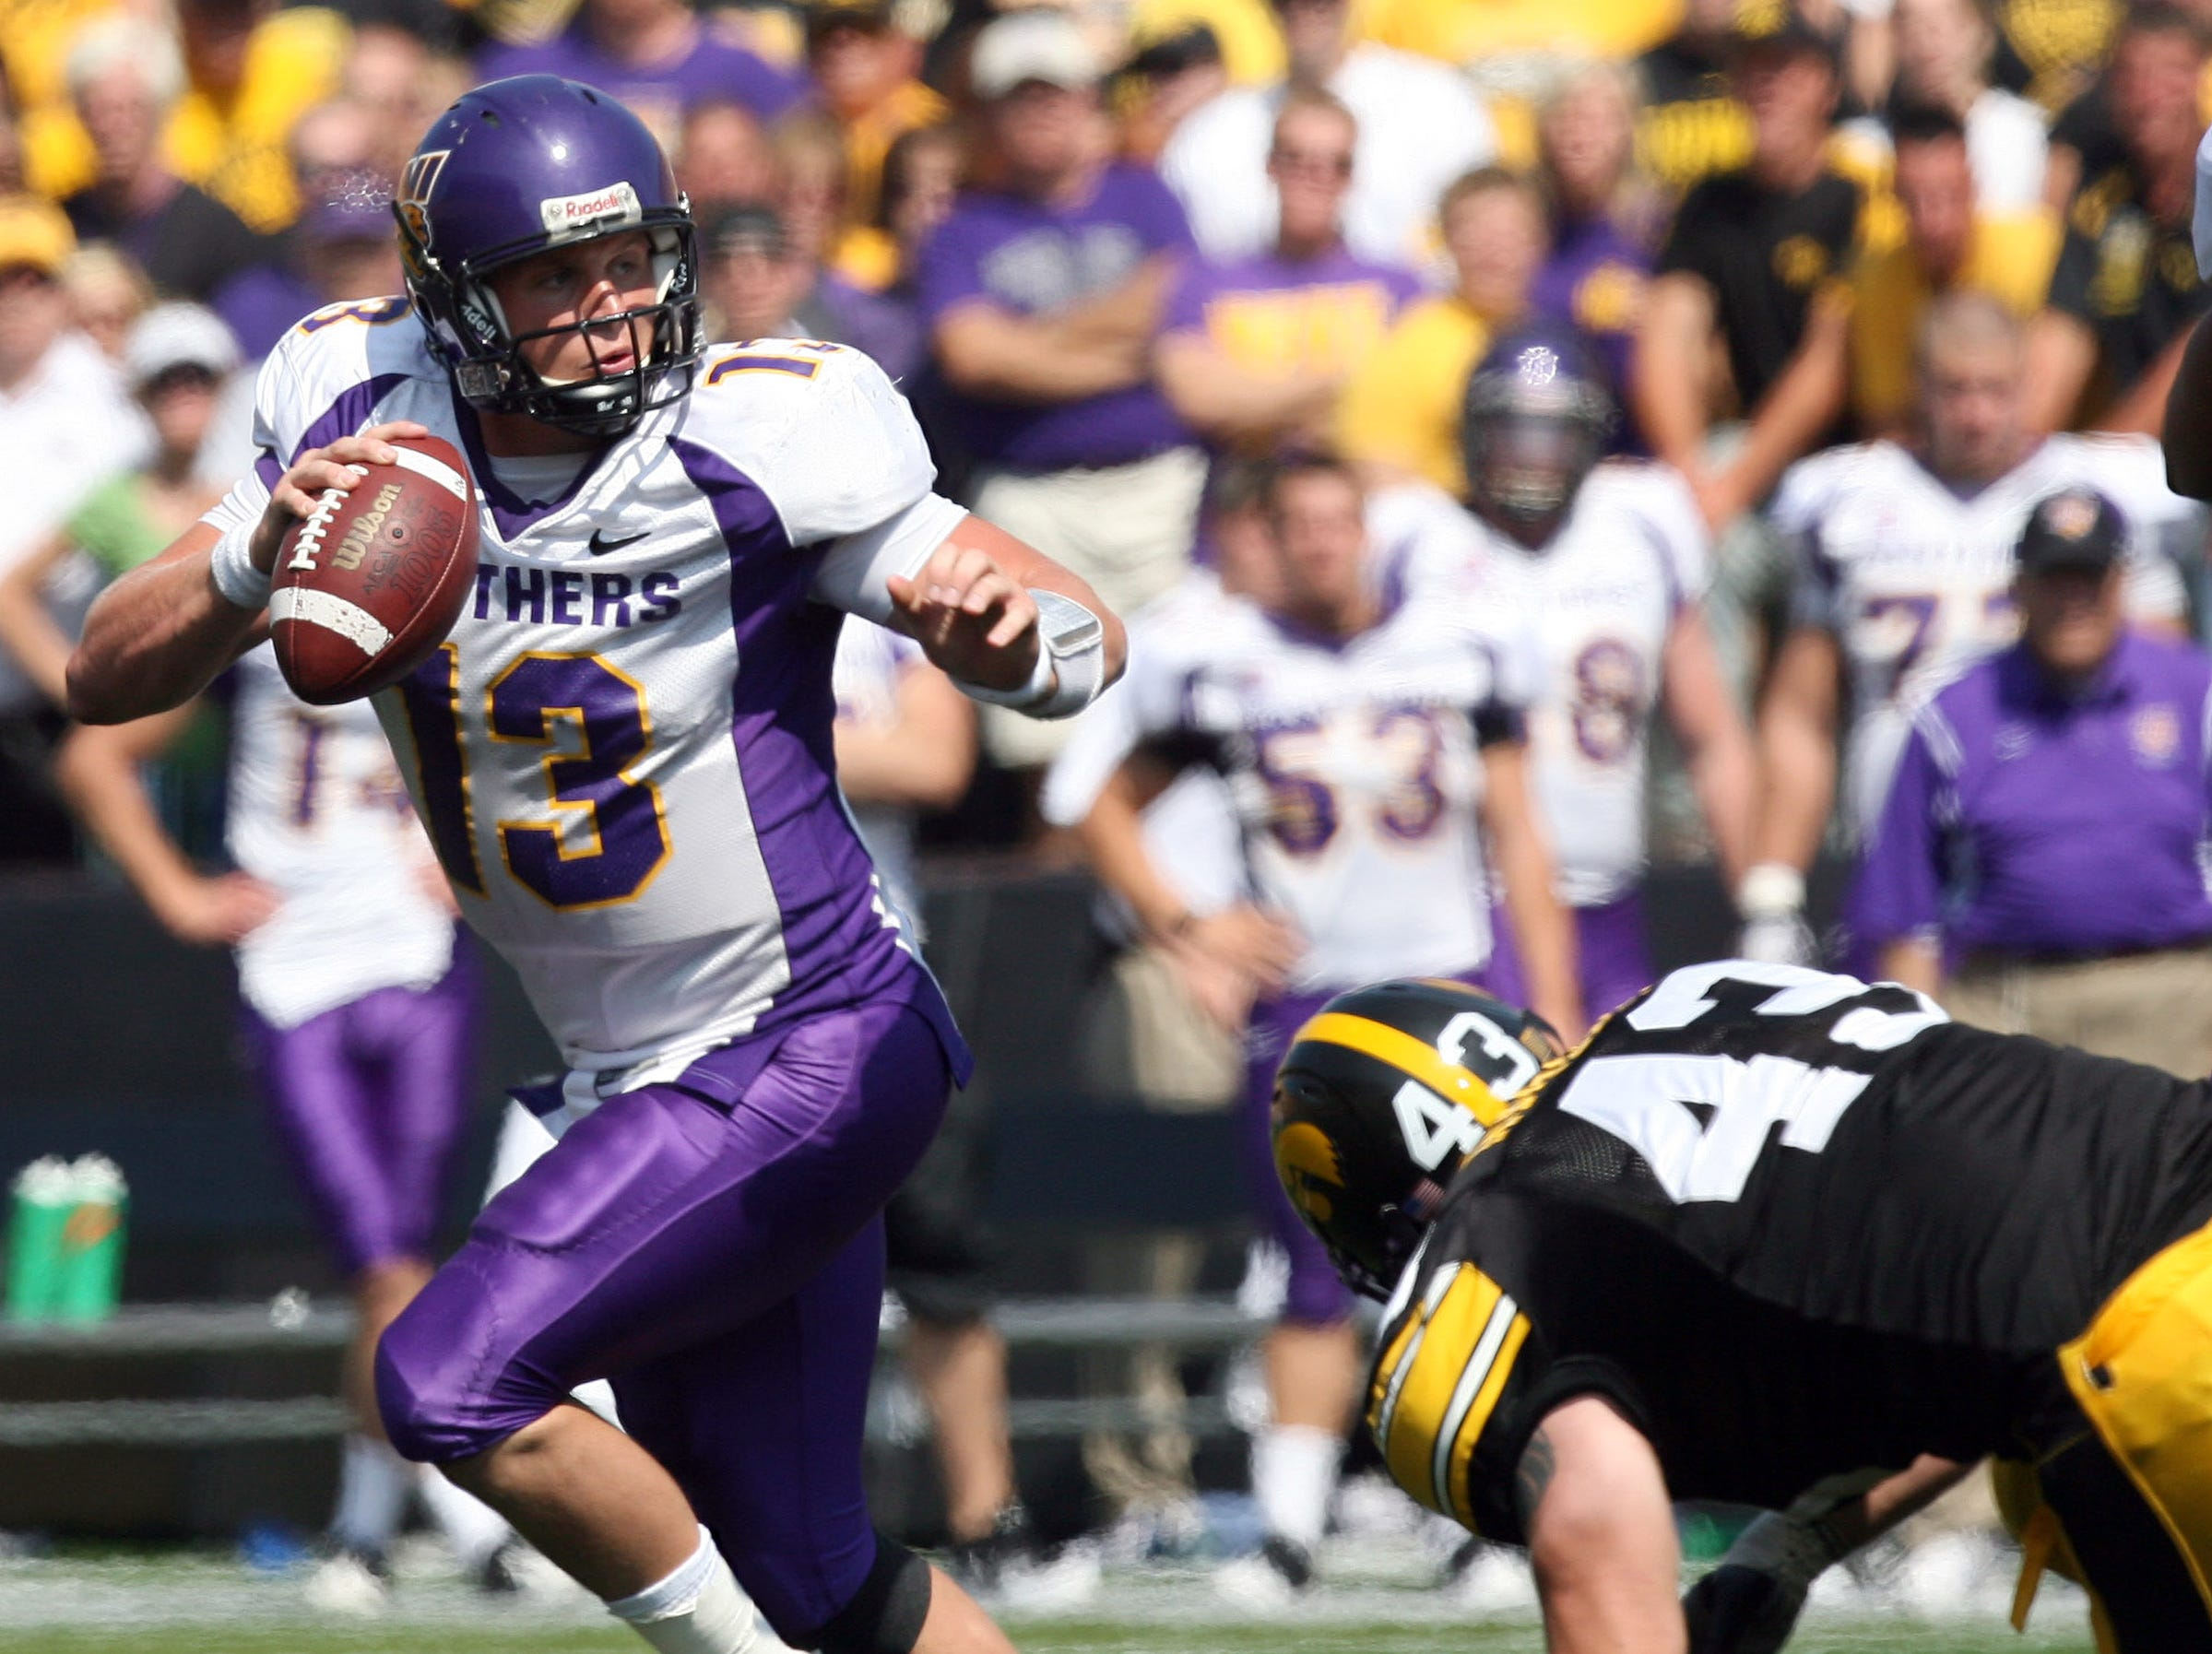 s0906iowafb - shot 09/05/09 Iowa City, IA.  Christopher Gannon/The Register  -- Iowa vs. Northern Iowa --   Northern Iowa quarterback Pat Grace (13) eludes Iowa linebacker Pat Angerer (43) while running out of the pocket Saturday in Iowa City.  (Christopher Gannon/The Des Moines Register)